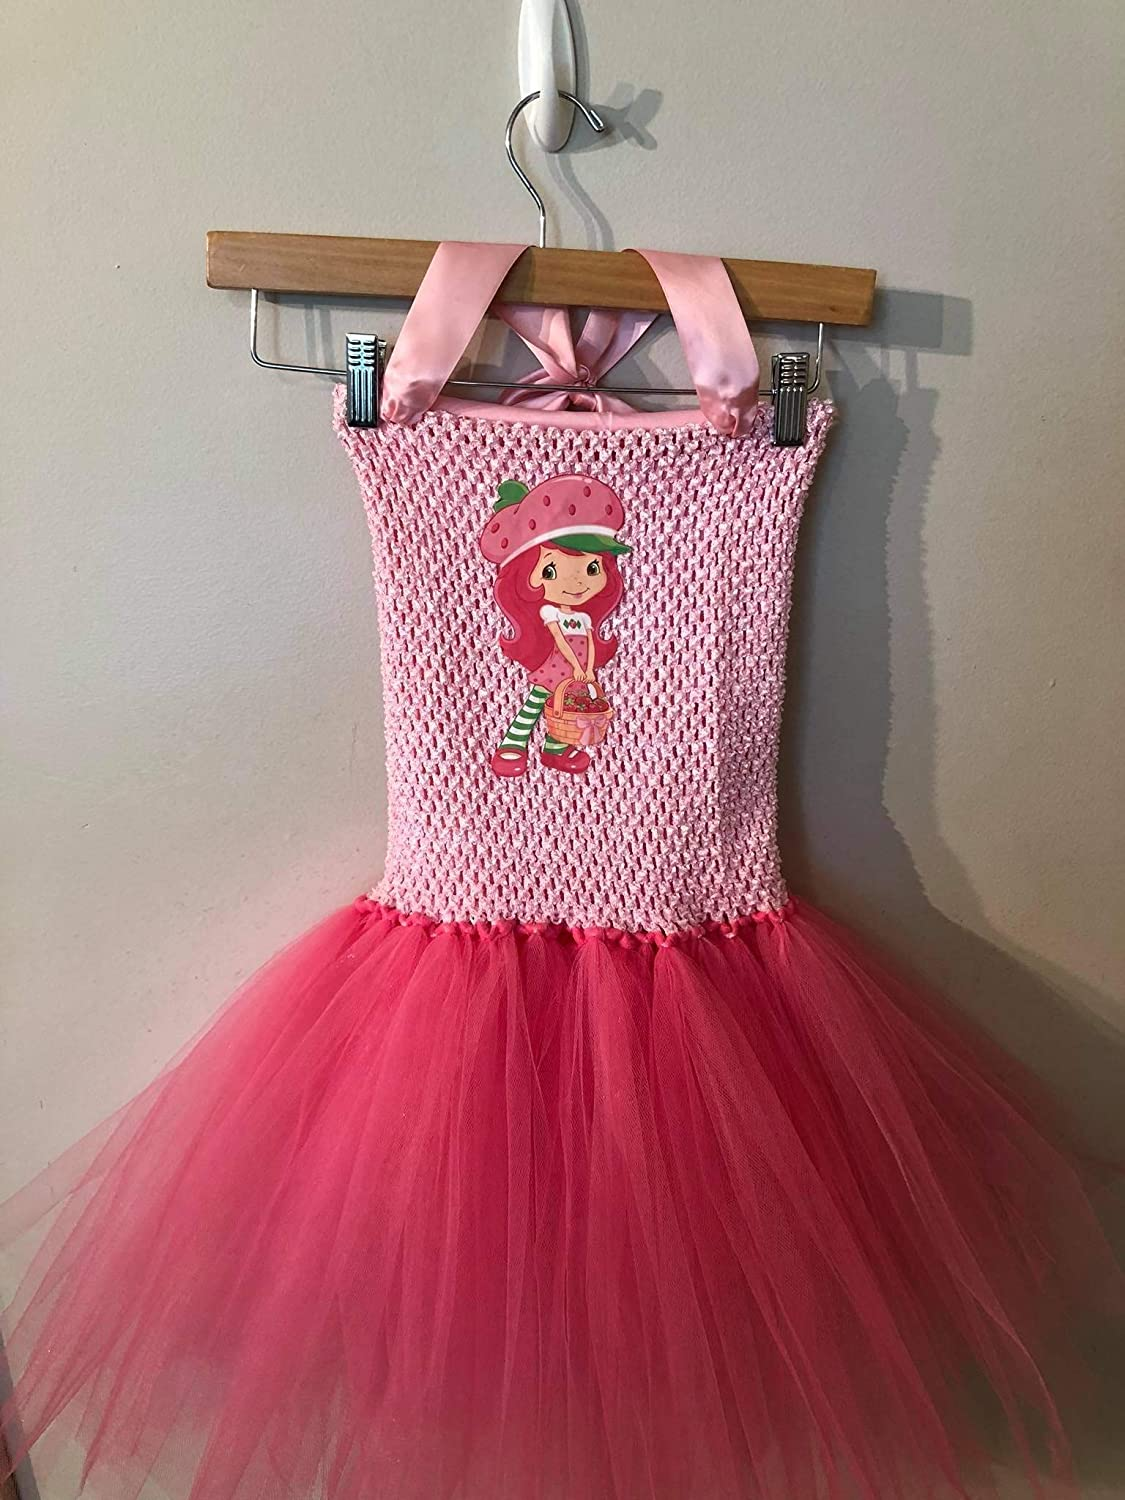 Ships fast and free! Berry Bitty Adventures Strawberry Shortcake Lined Lining Inside Tutu Birthday Party Dress Costume Baby Toddler Girls